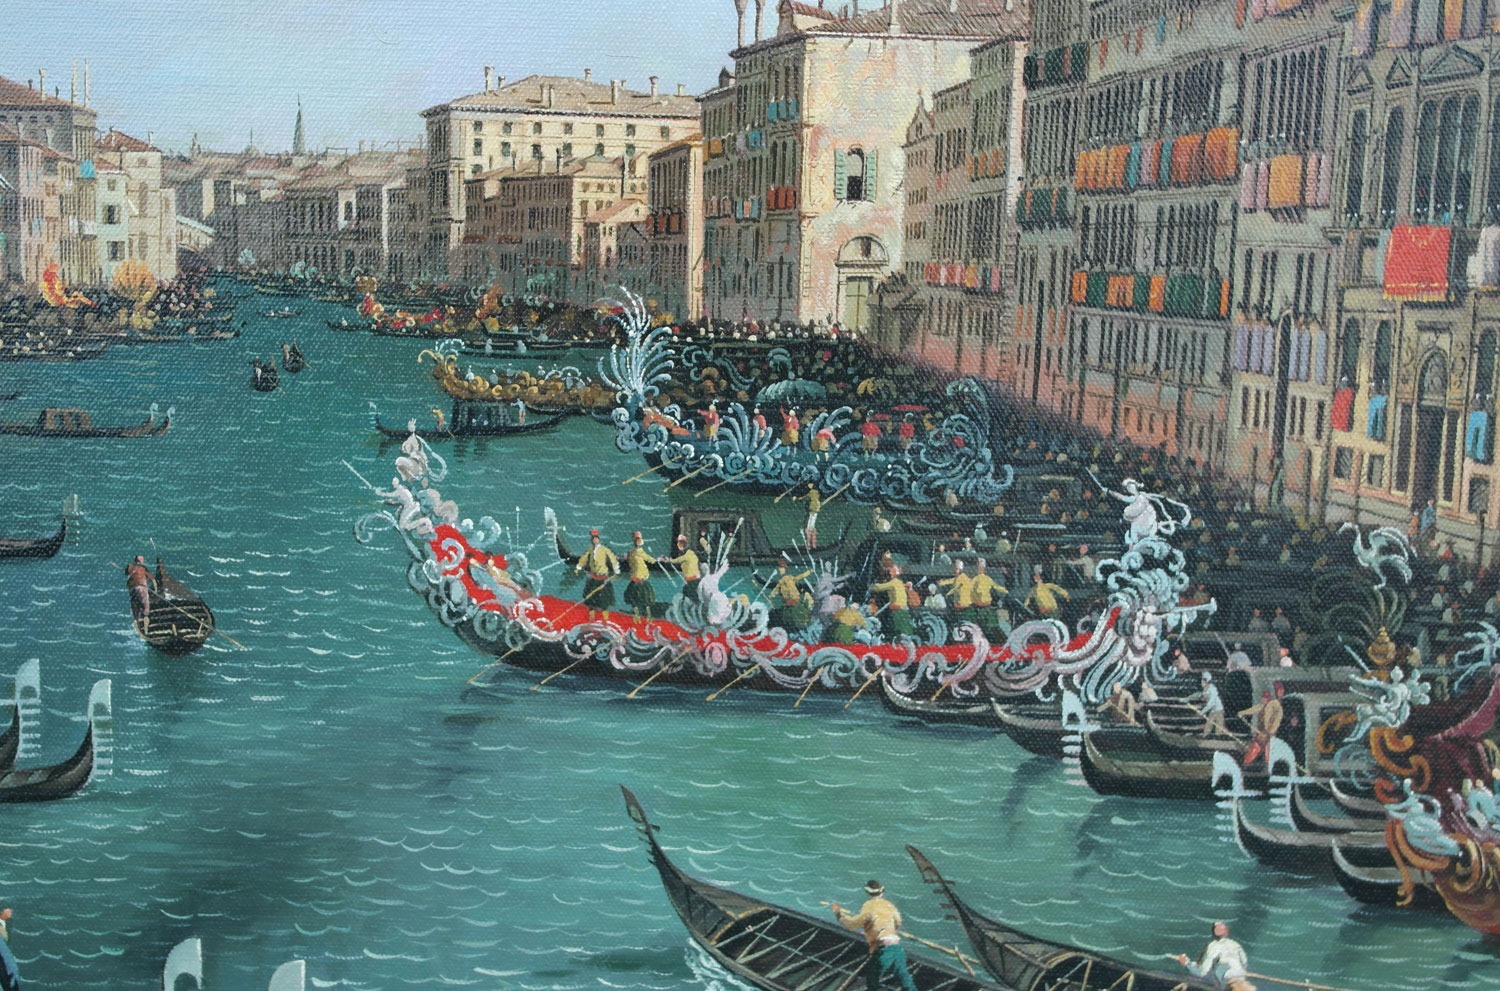 A Regatta On The Grand Canal after Canaletto